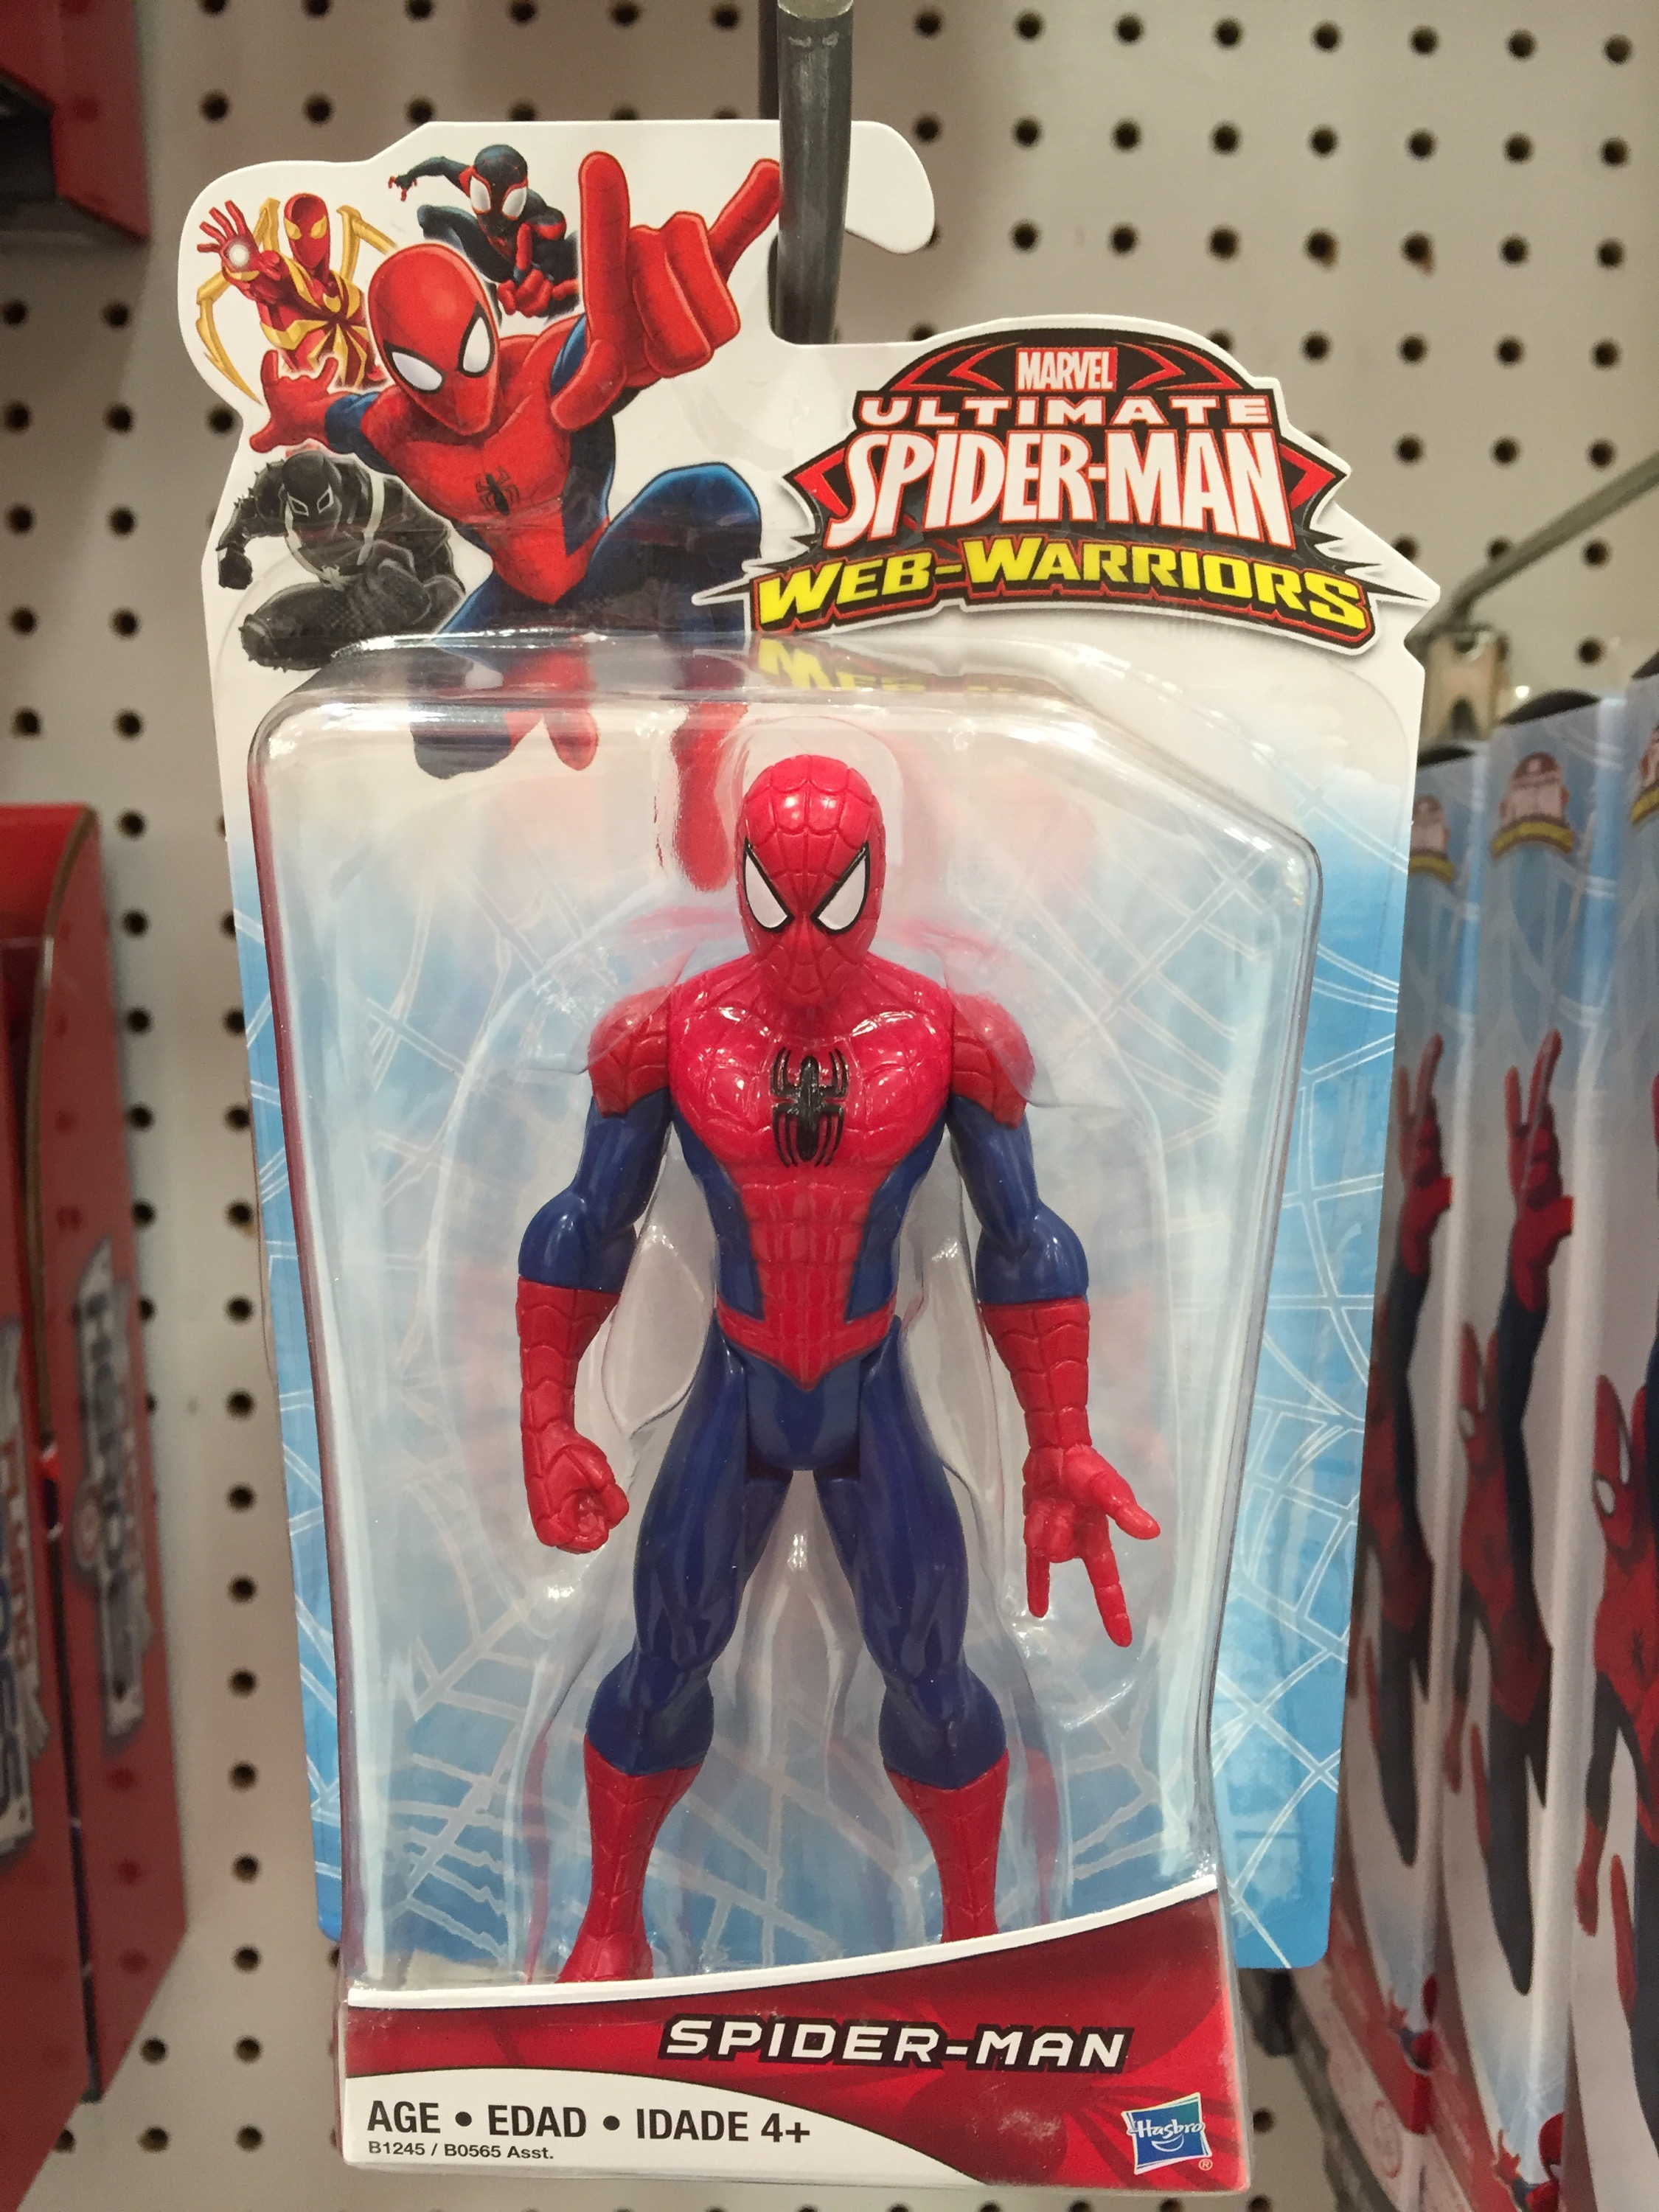 Ultimate Spider-Man Web Warriors Figures Released ...